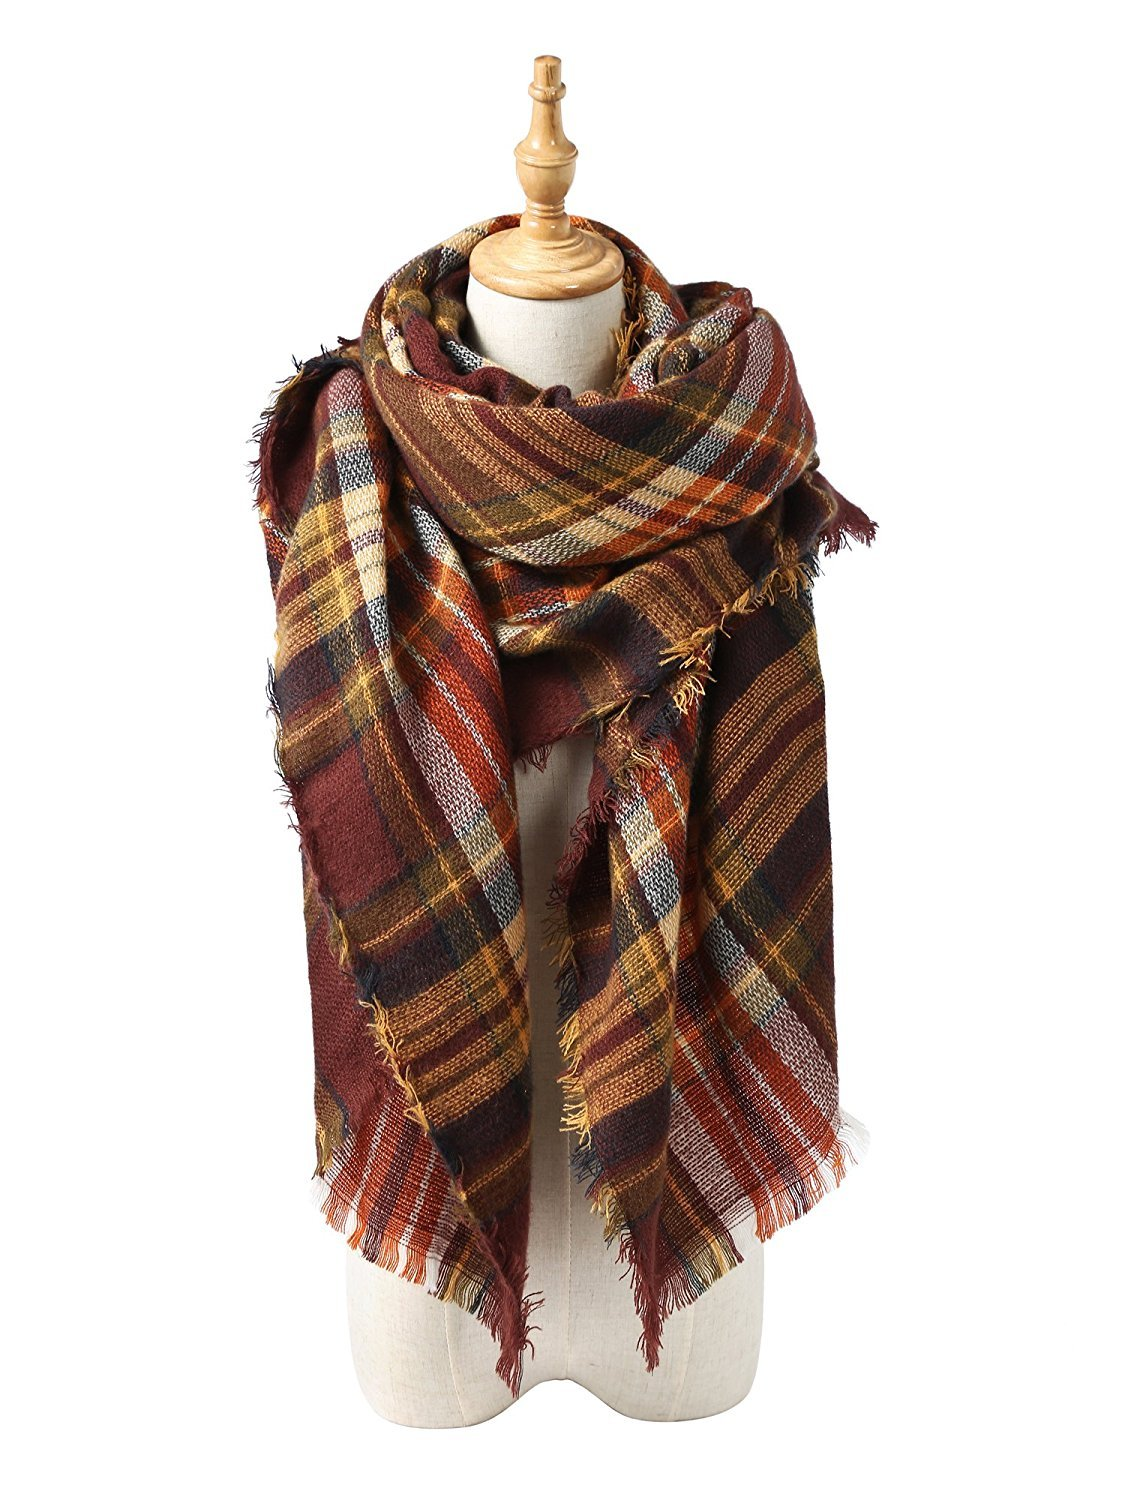 Trendy Women's Cozy Warm Winter Fall Blanket Scarf Stylish Soft Chunky Checked Giant Scarves Shawl Cape Coffee Warm